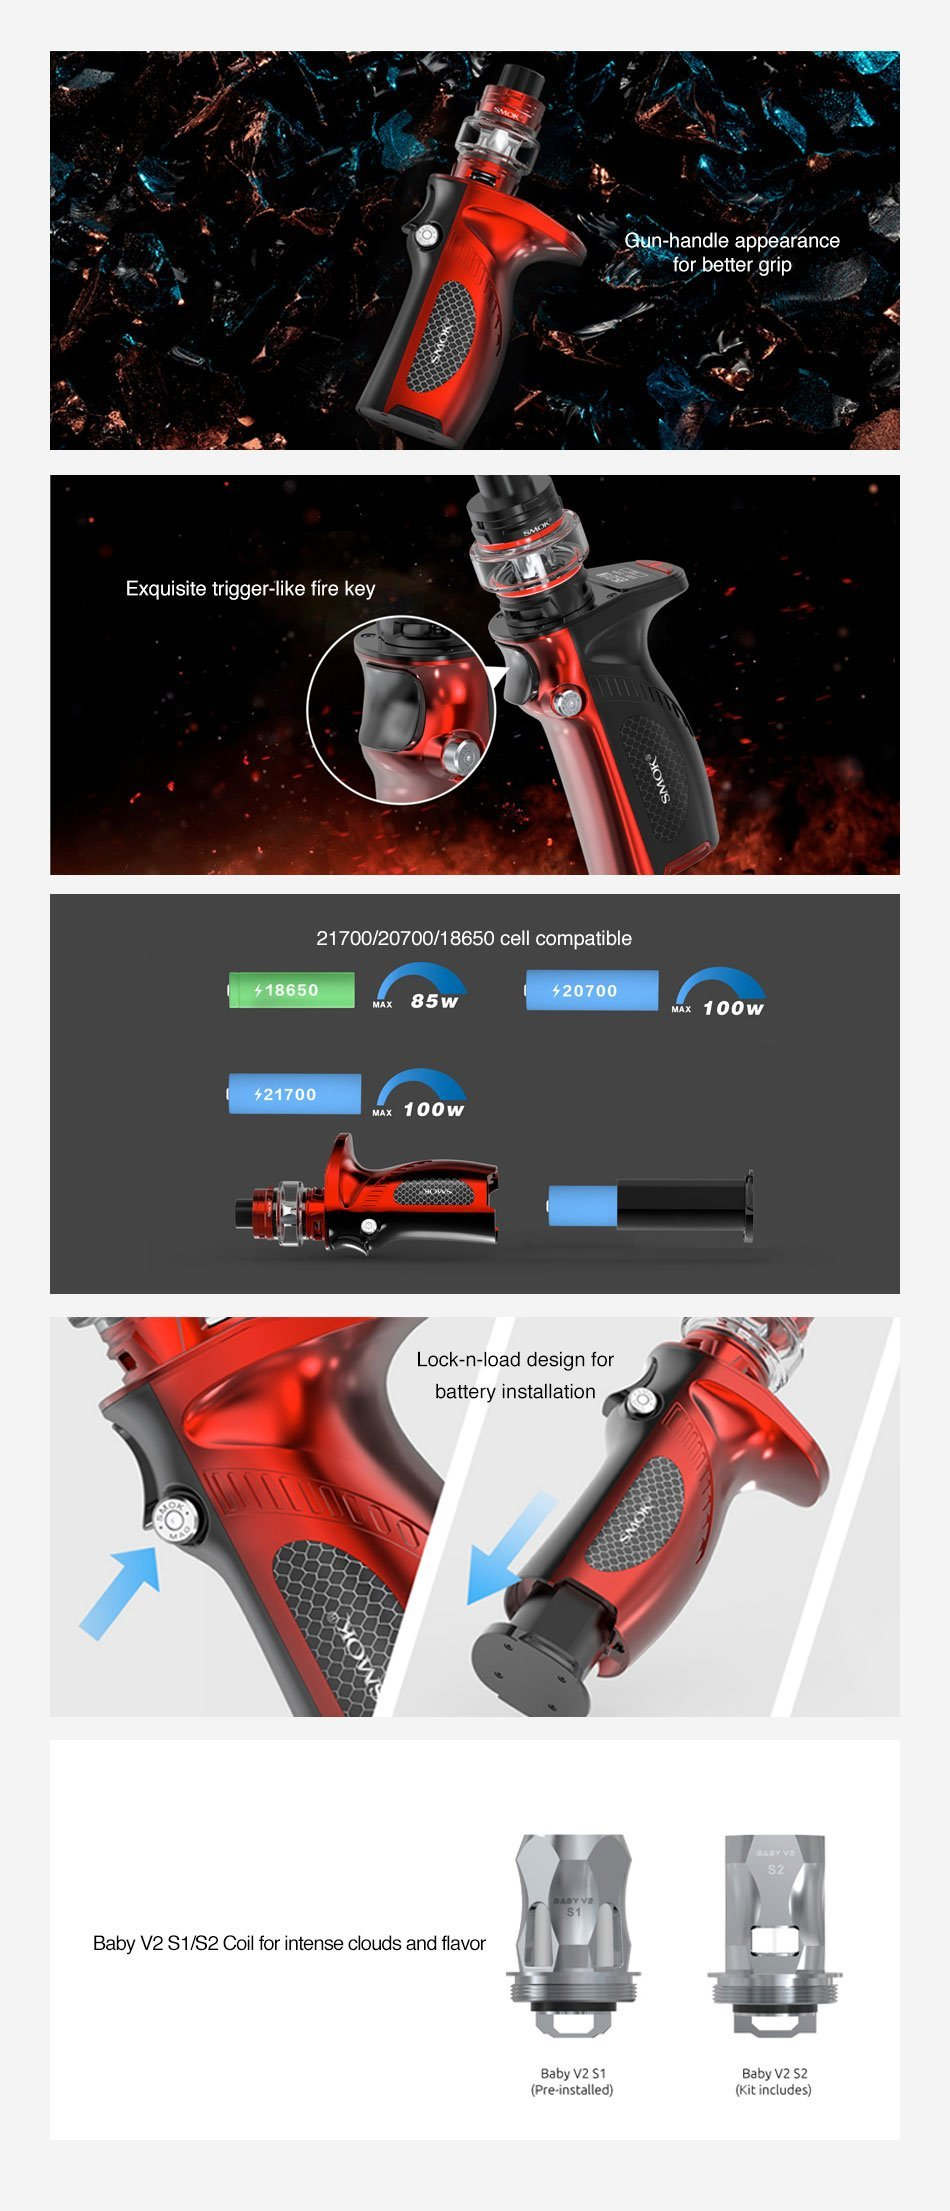 smok-grip-functions-battery-life-features